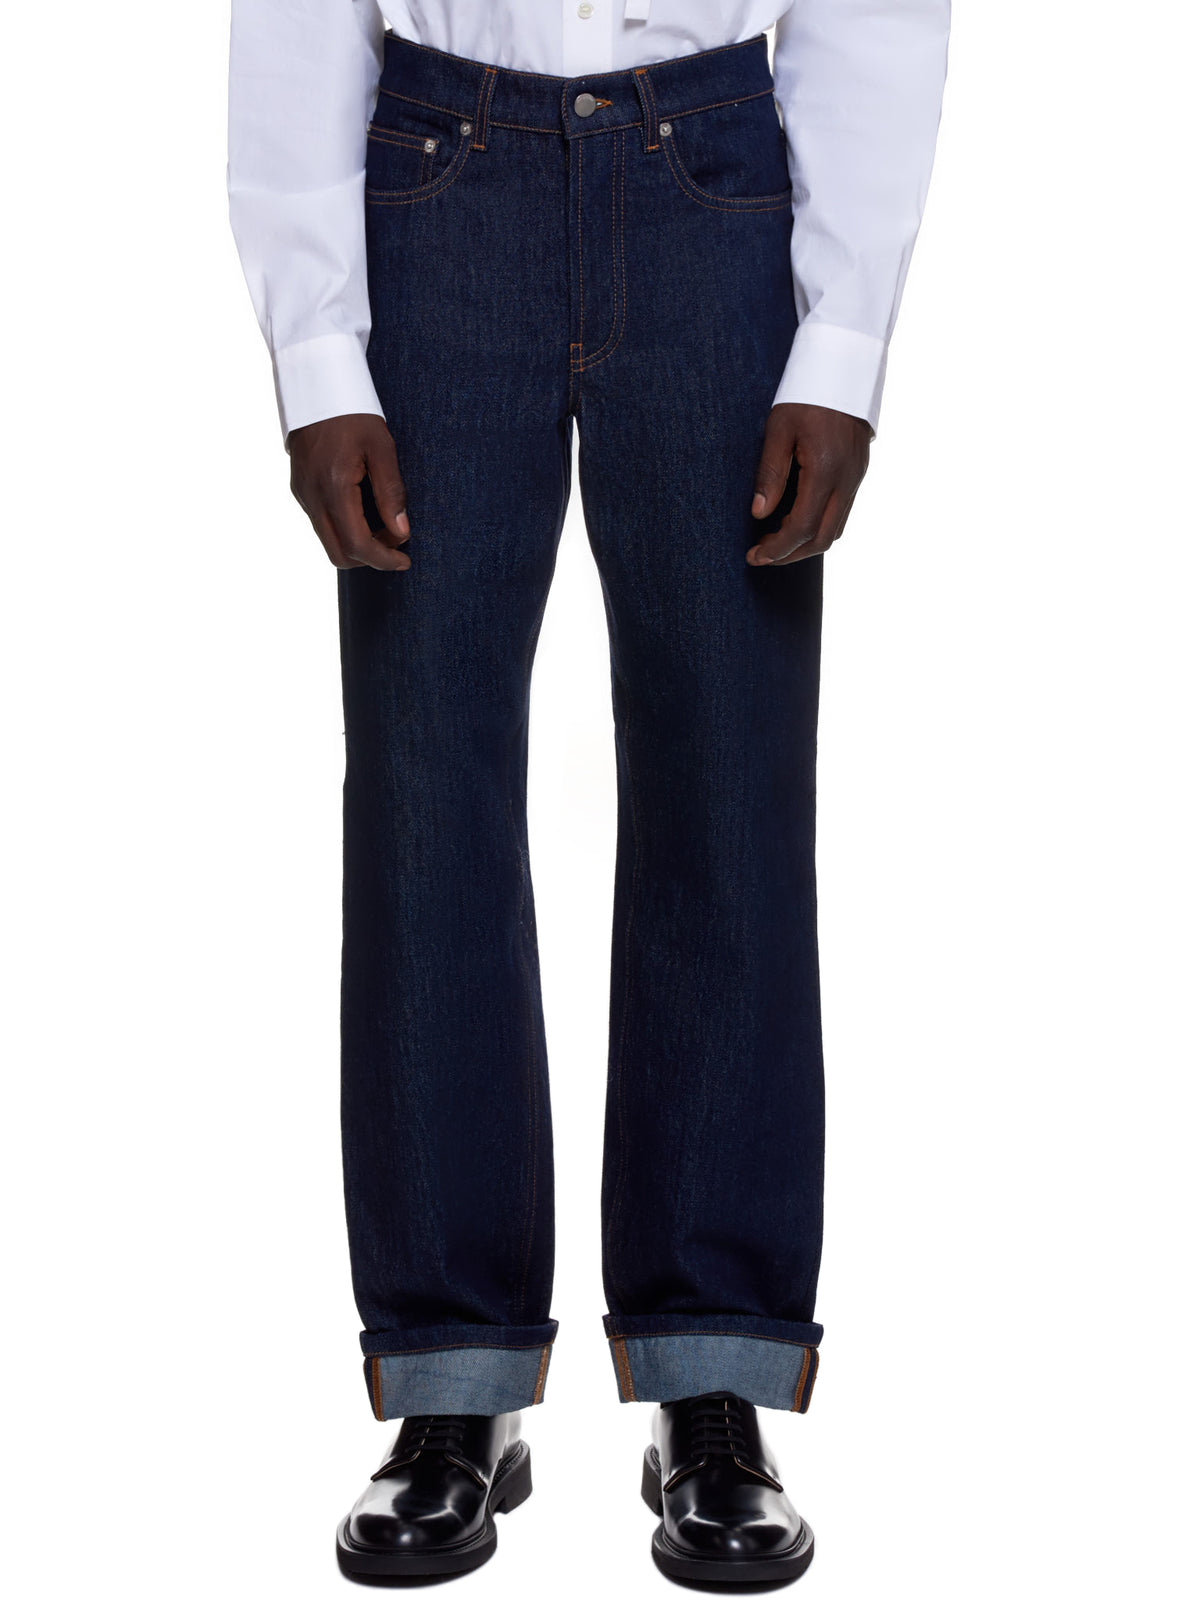 JW Anderson Jeans | H.Lorenzo Front